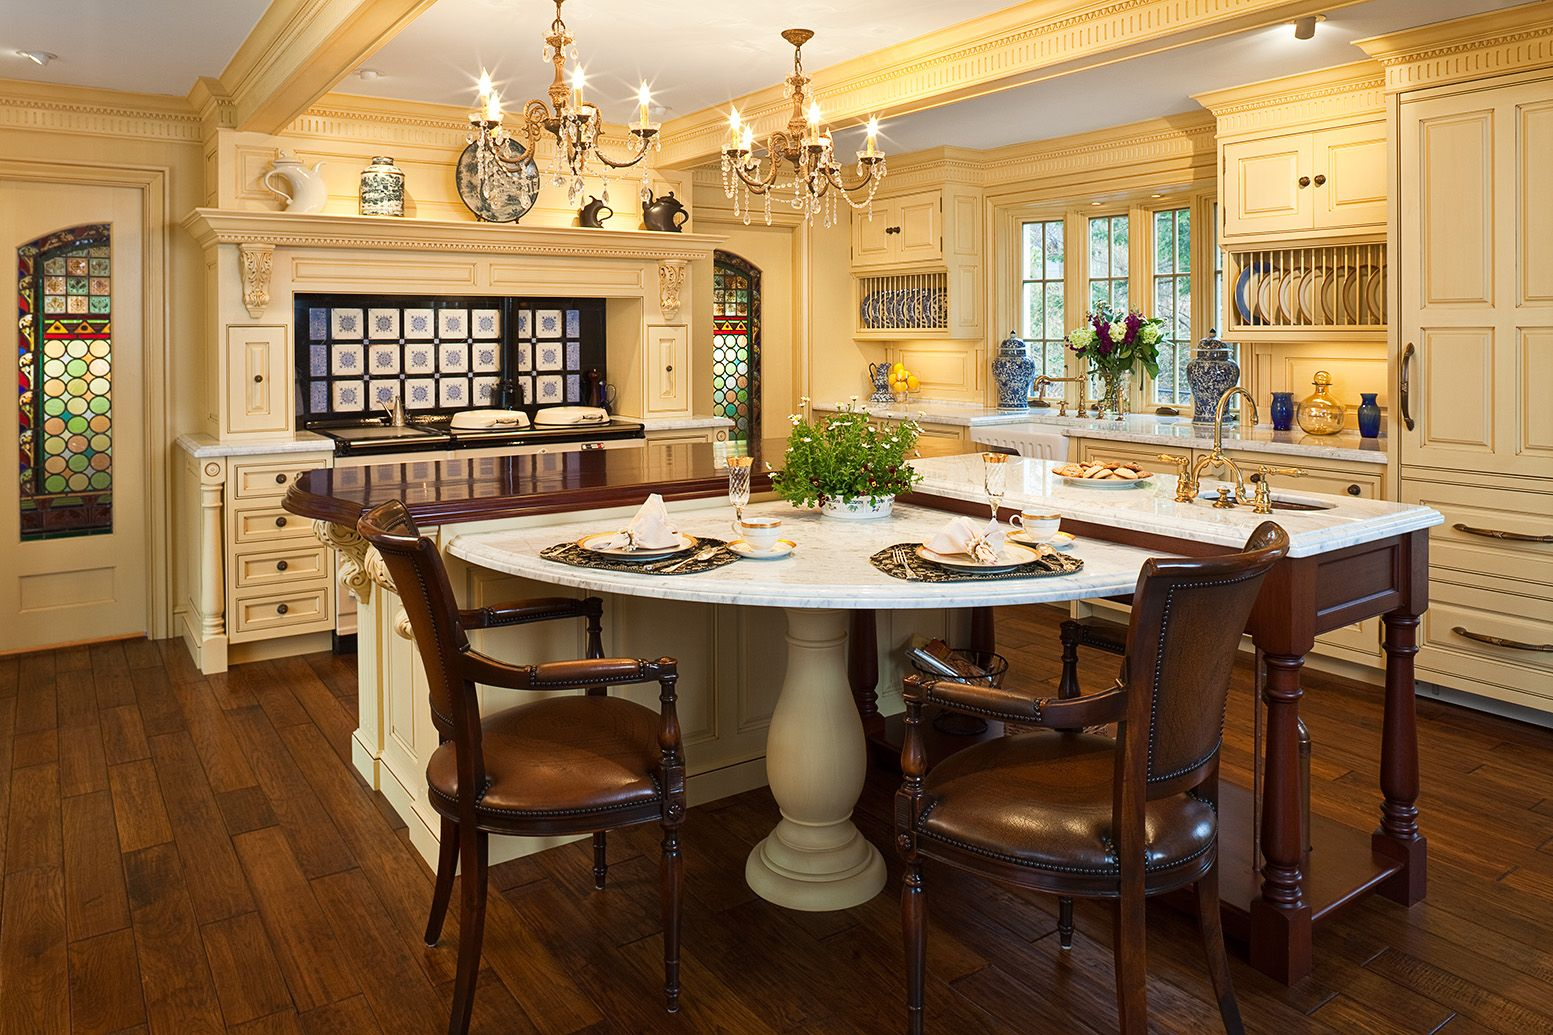 Superior Woodcraft, Inc.   Custom Cabinetry: Dream Kitchens And Baths  Features Covenant Kitchens And Superior Woodcraft